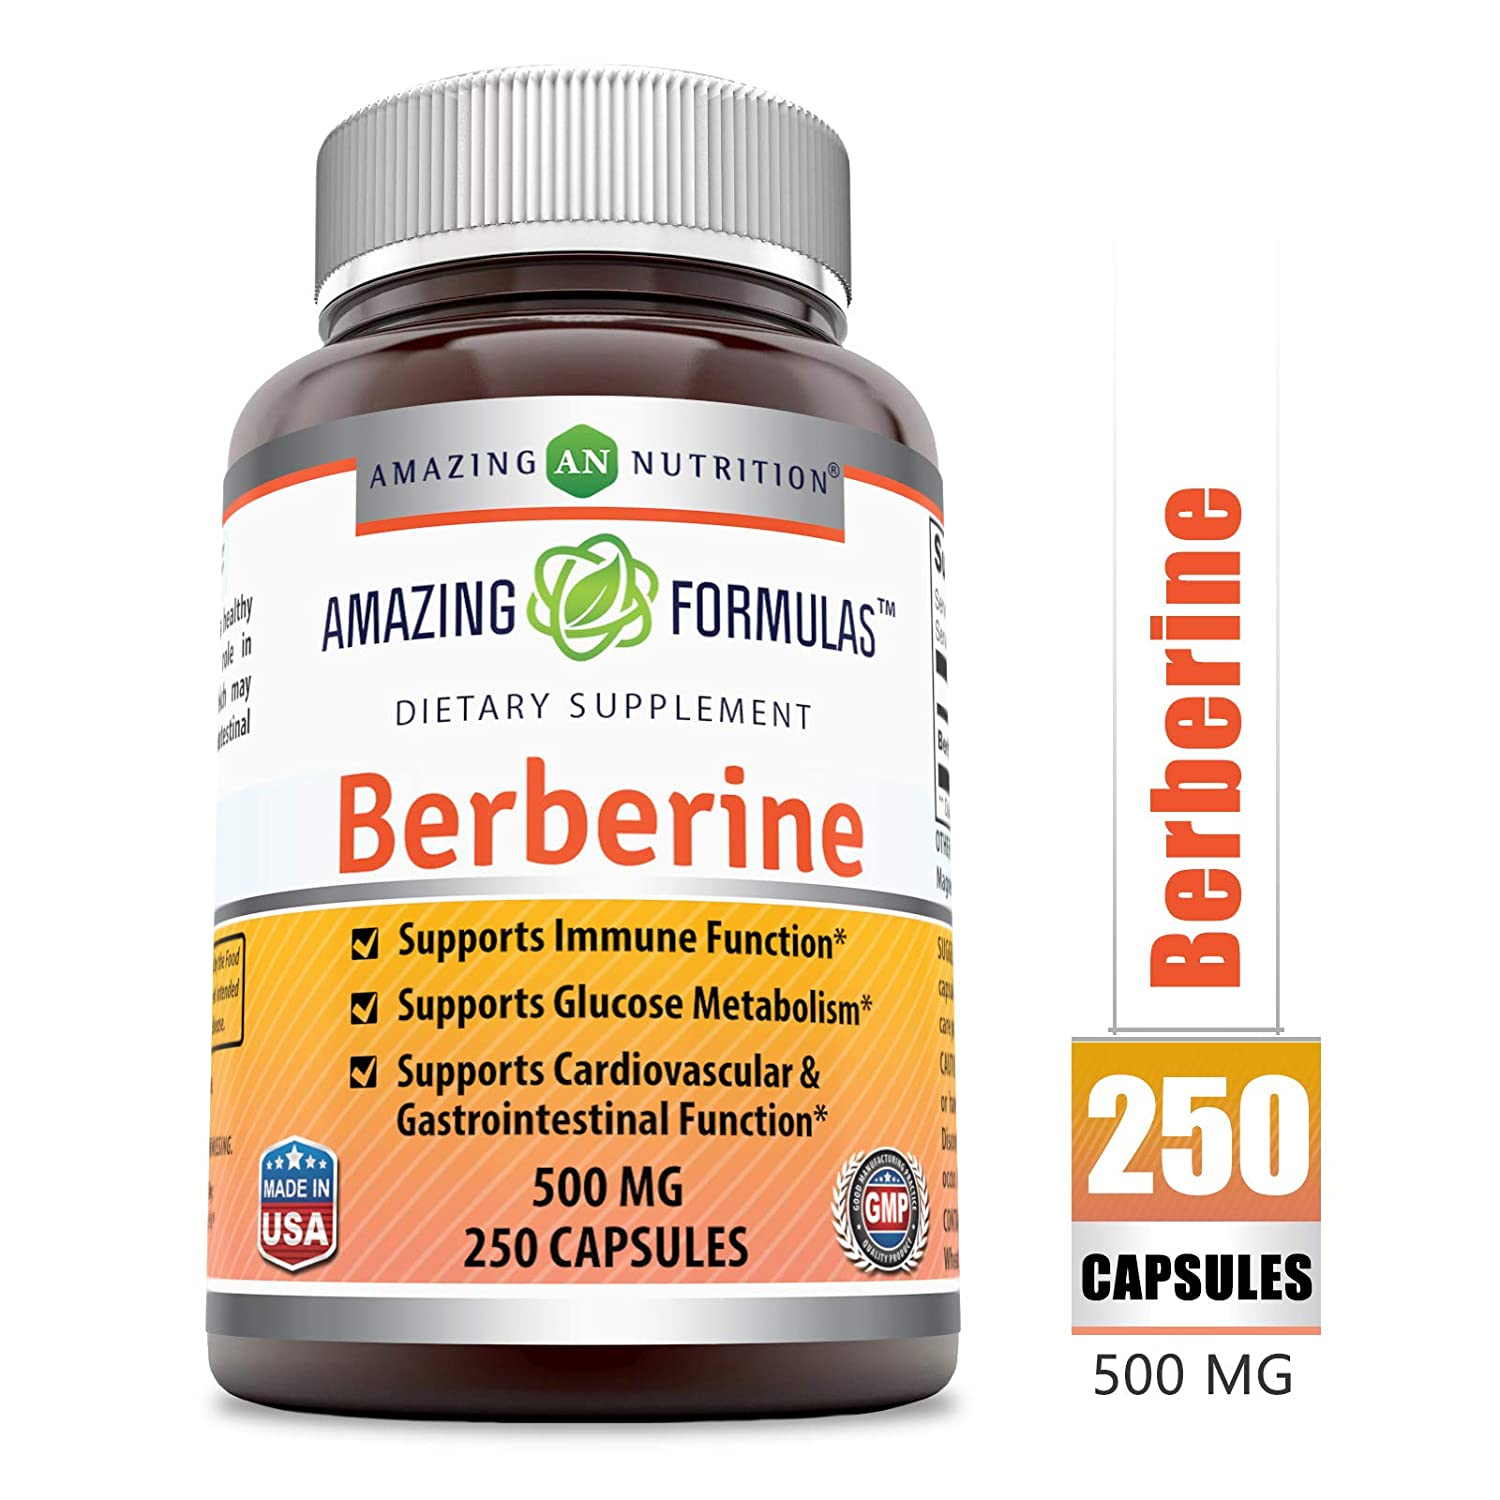 Amazing Formulas Berberine Plus 500 mg Capsules – Supports Immune System – Supports Glucose Metabolism – Aid in Healthy Weight Management 250 Count